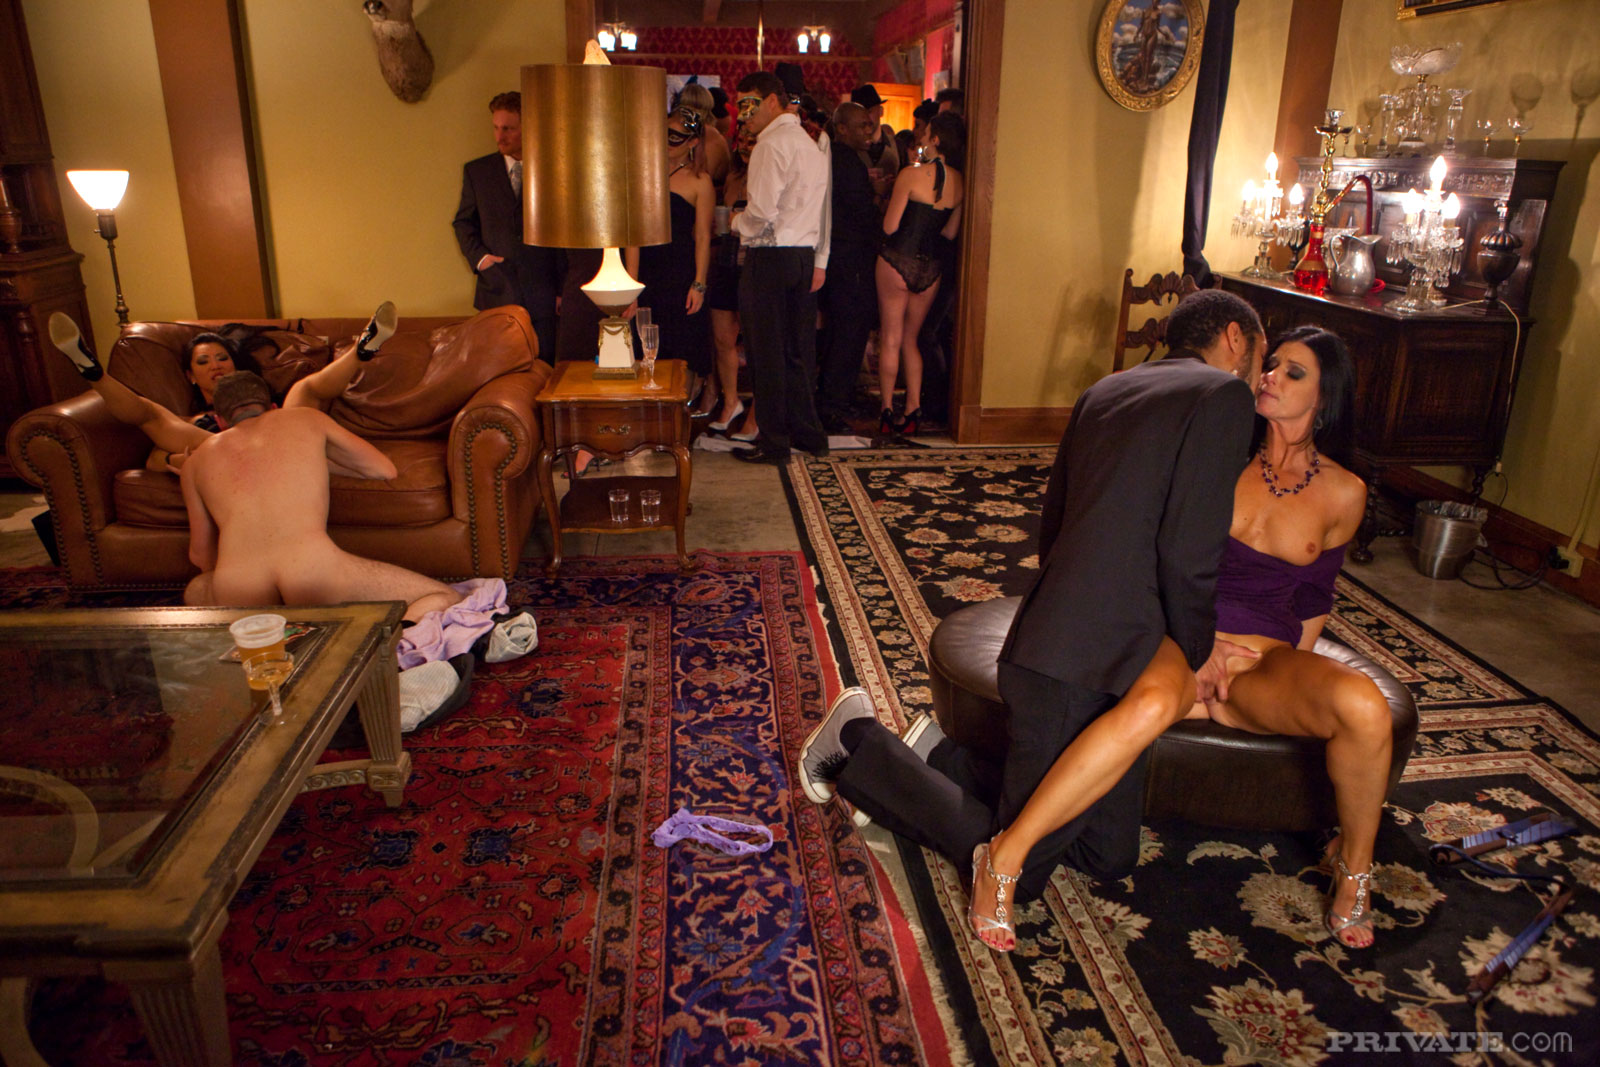 Private Porn A Real Swingers Party In San Francisco – An Open Invitation a Real Swingers Party in San Francisco